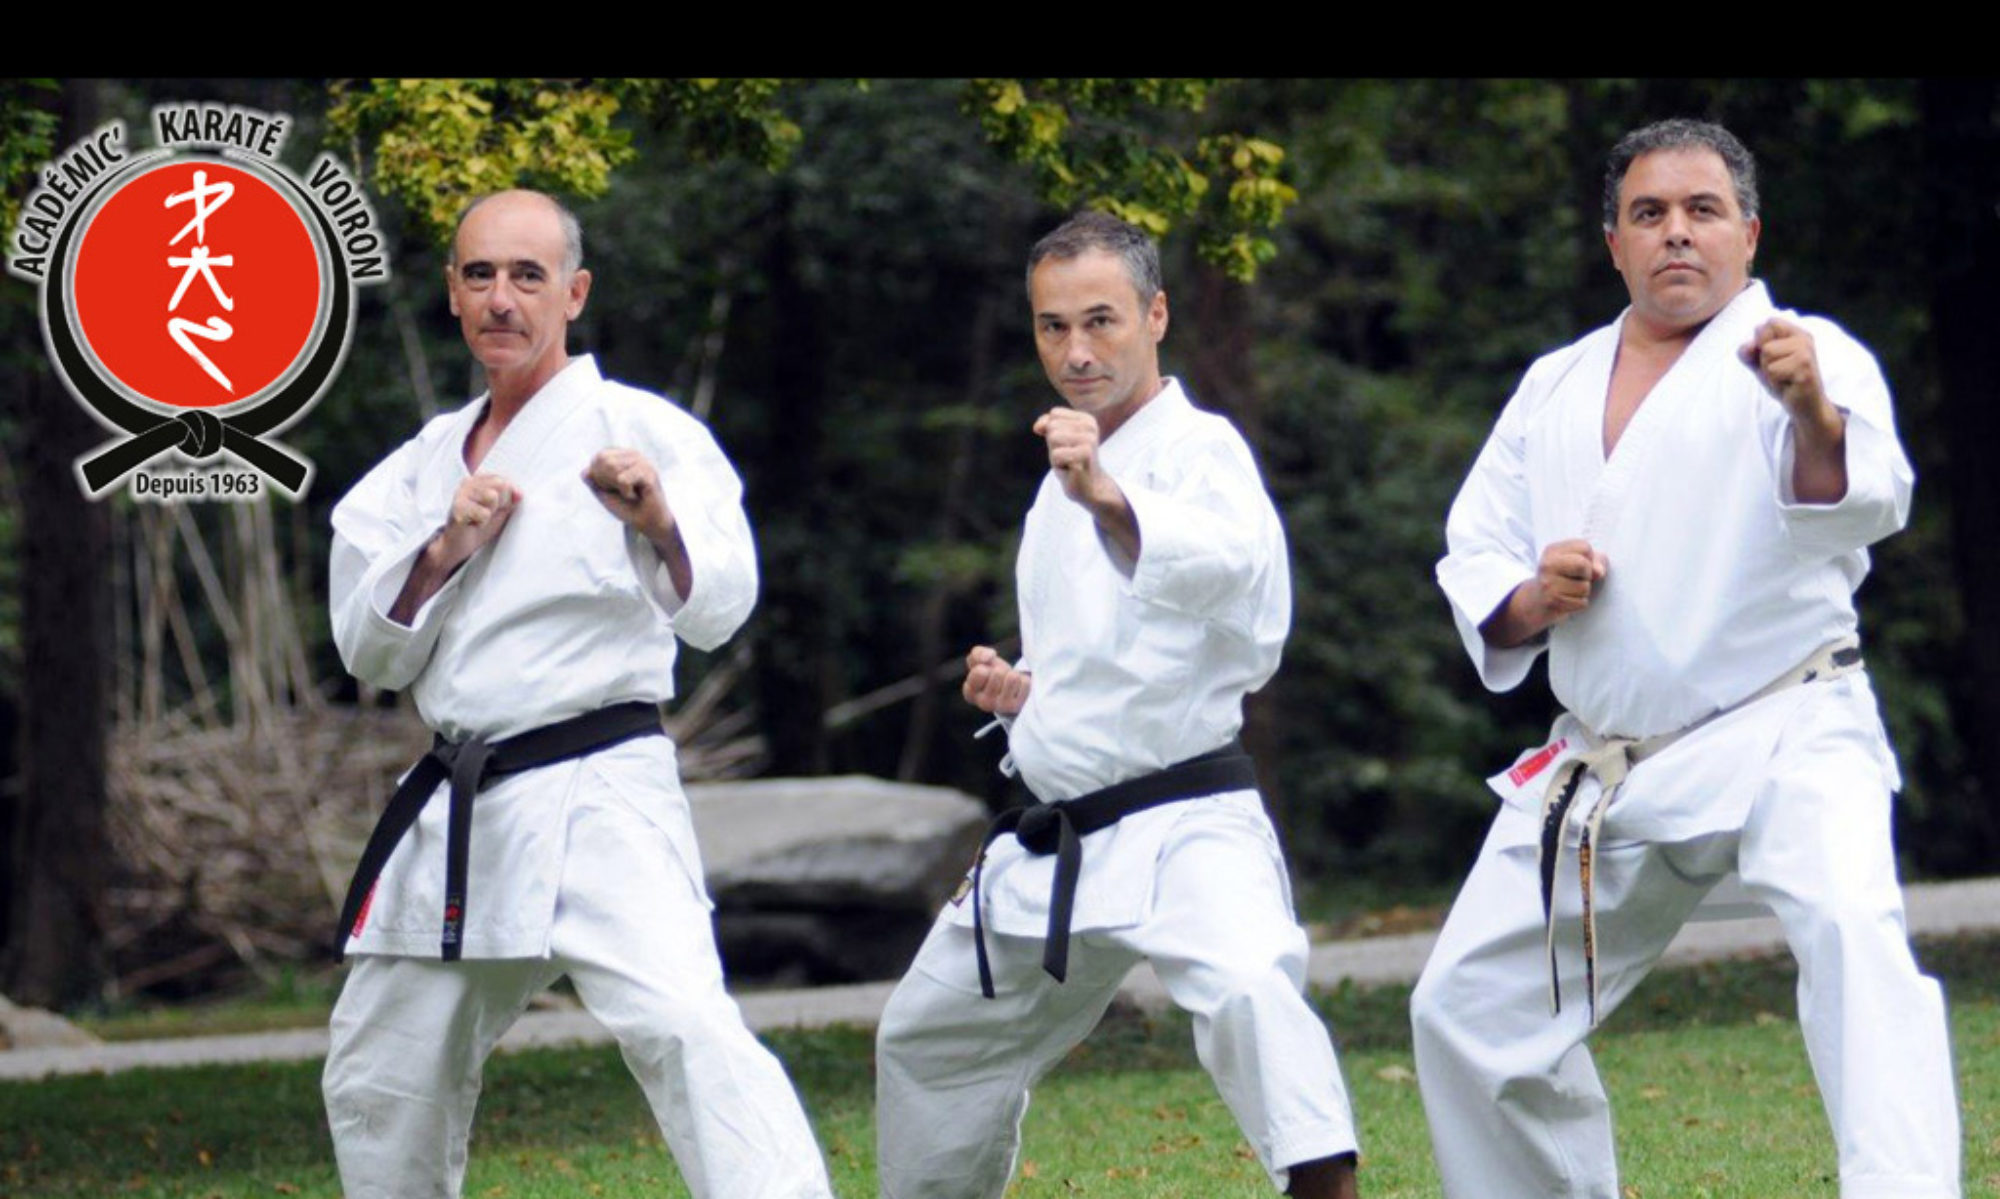 ACADEMIC KARATE VOIRON